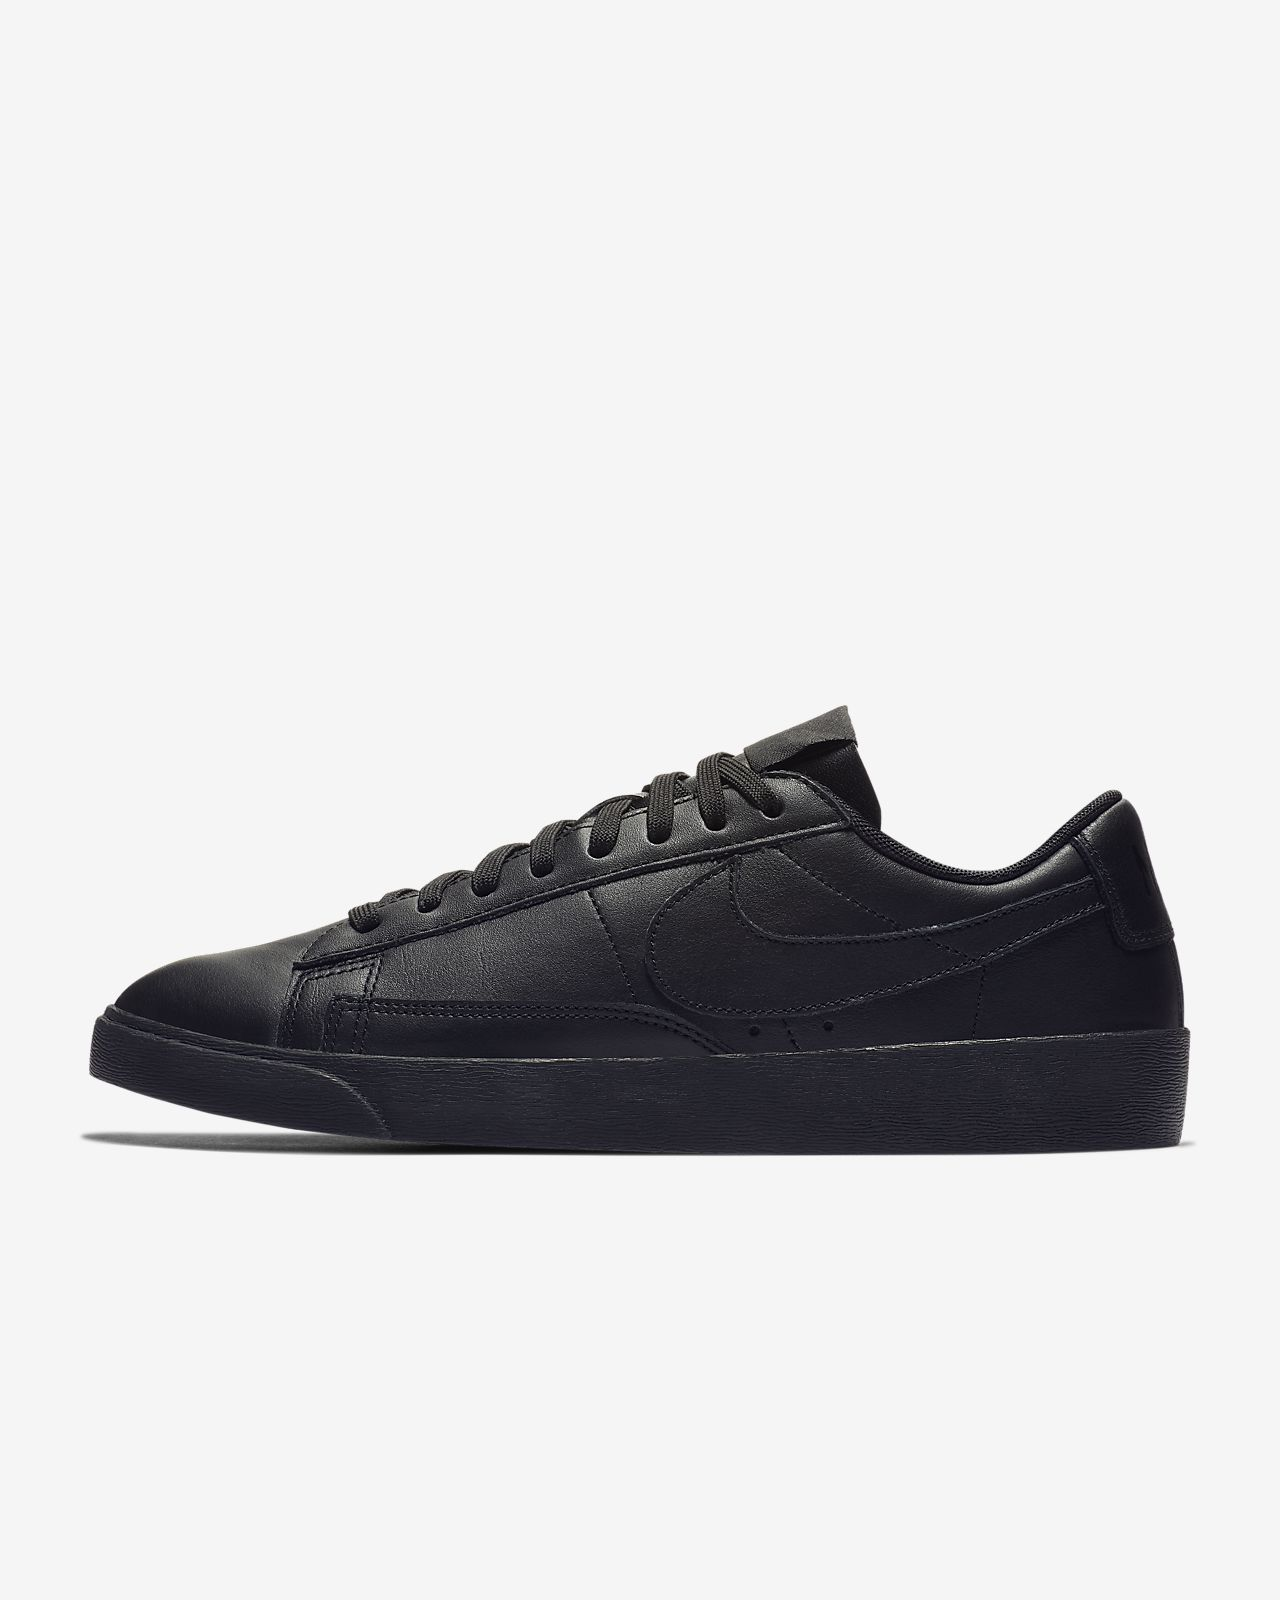 low priced 92c09 9476d Nike Blazer Low LE Damenschuh